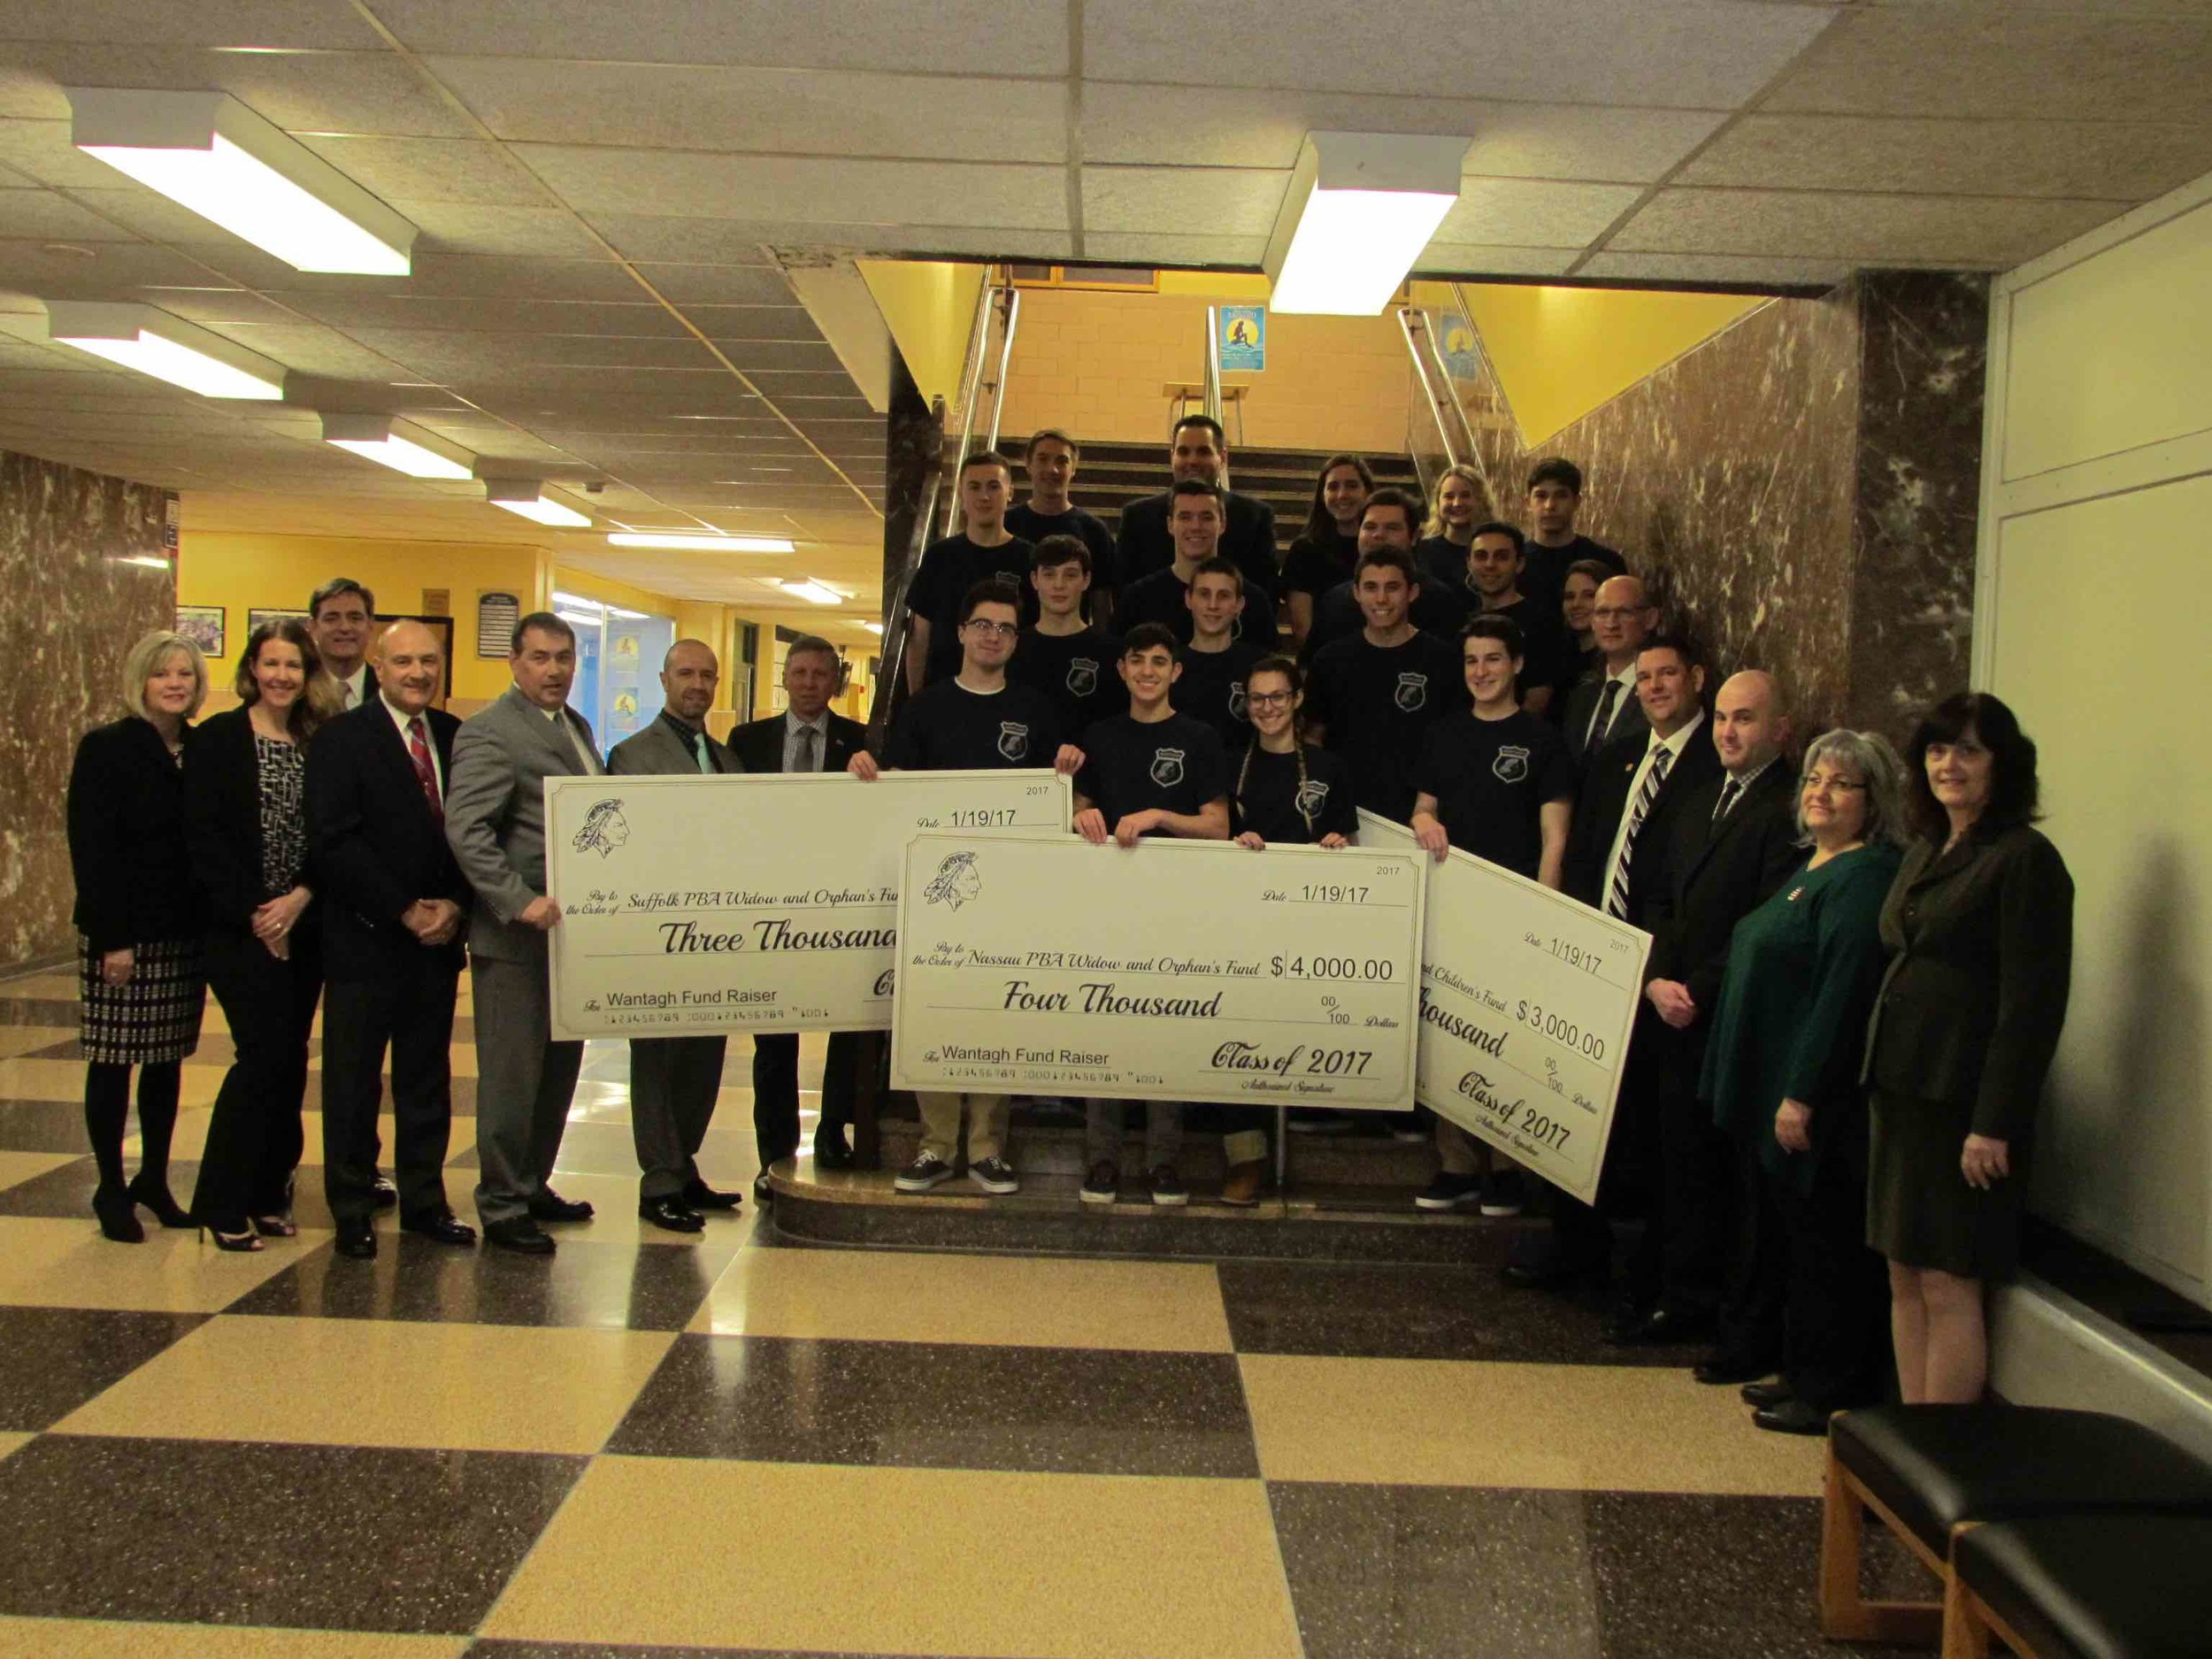 The Wantagh High School class of 2017 raised $10,000 for the Police Benevolent Association Widow and Orphan Fund in New York City and Nassau and Suffolk counties.